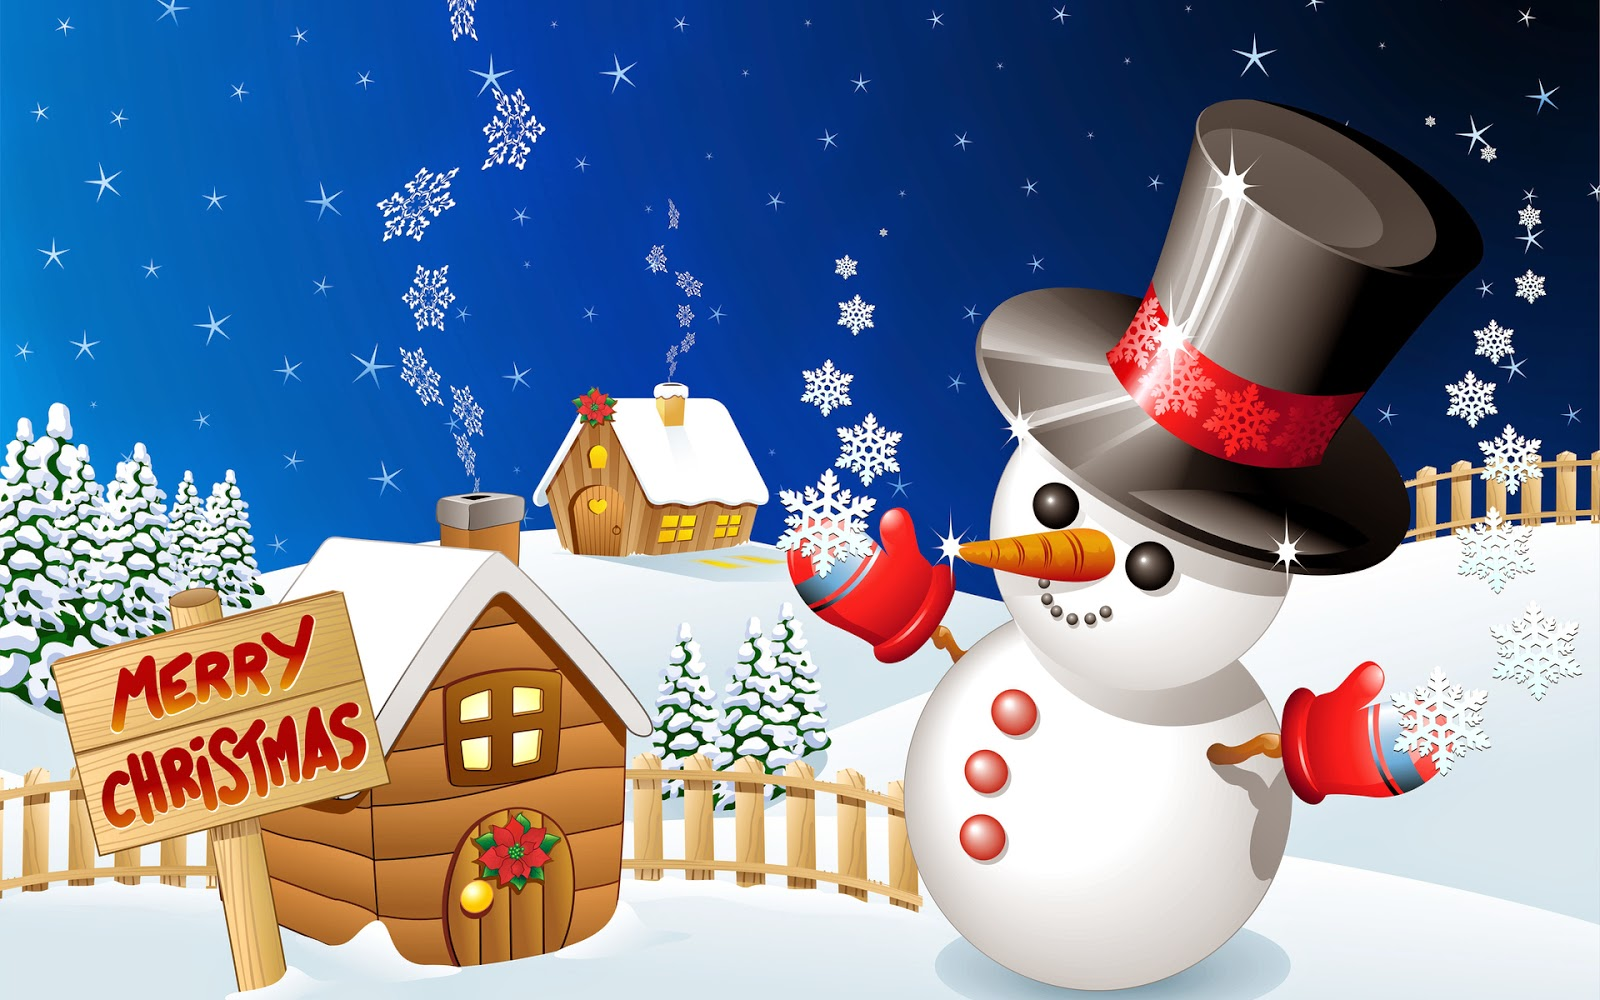 Merry-Christmas-board-snowman-cartoon-image-for-facebook-social-friends-sharing-.jpg